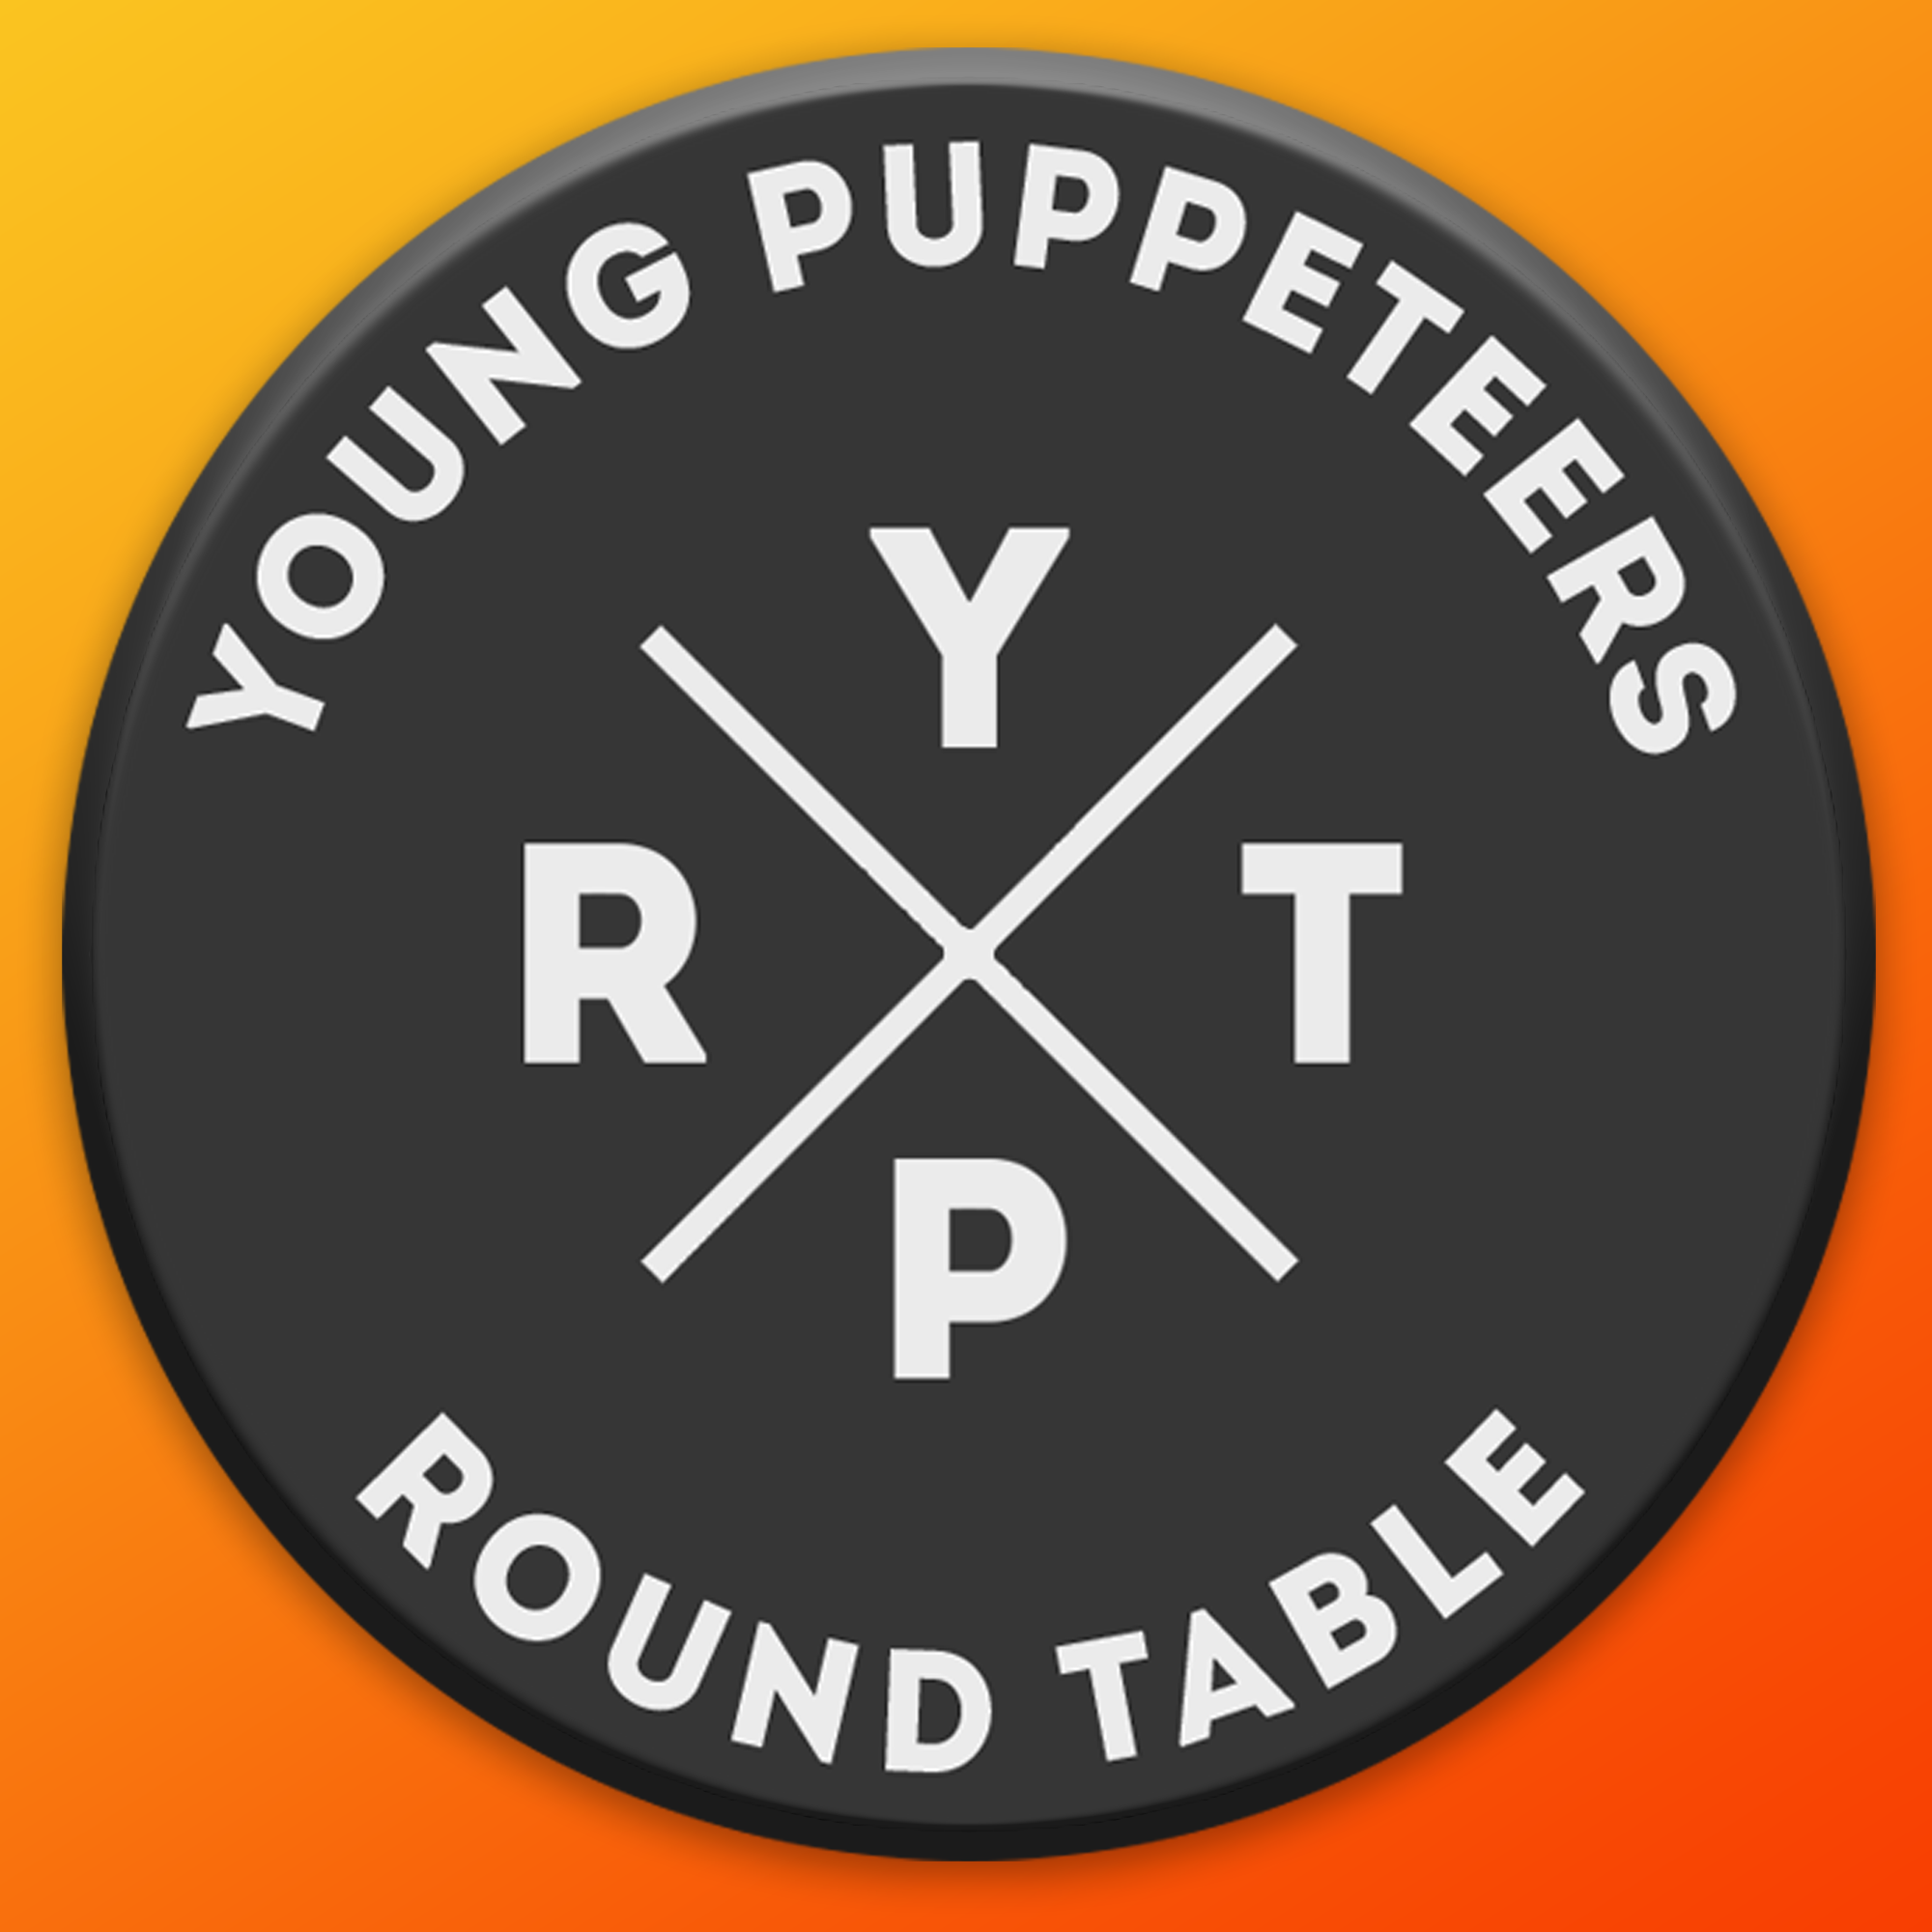 youngpuppeteers